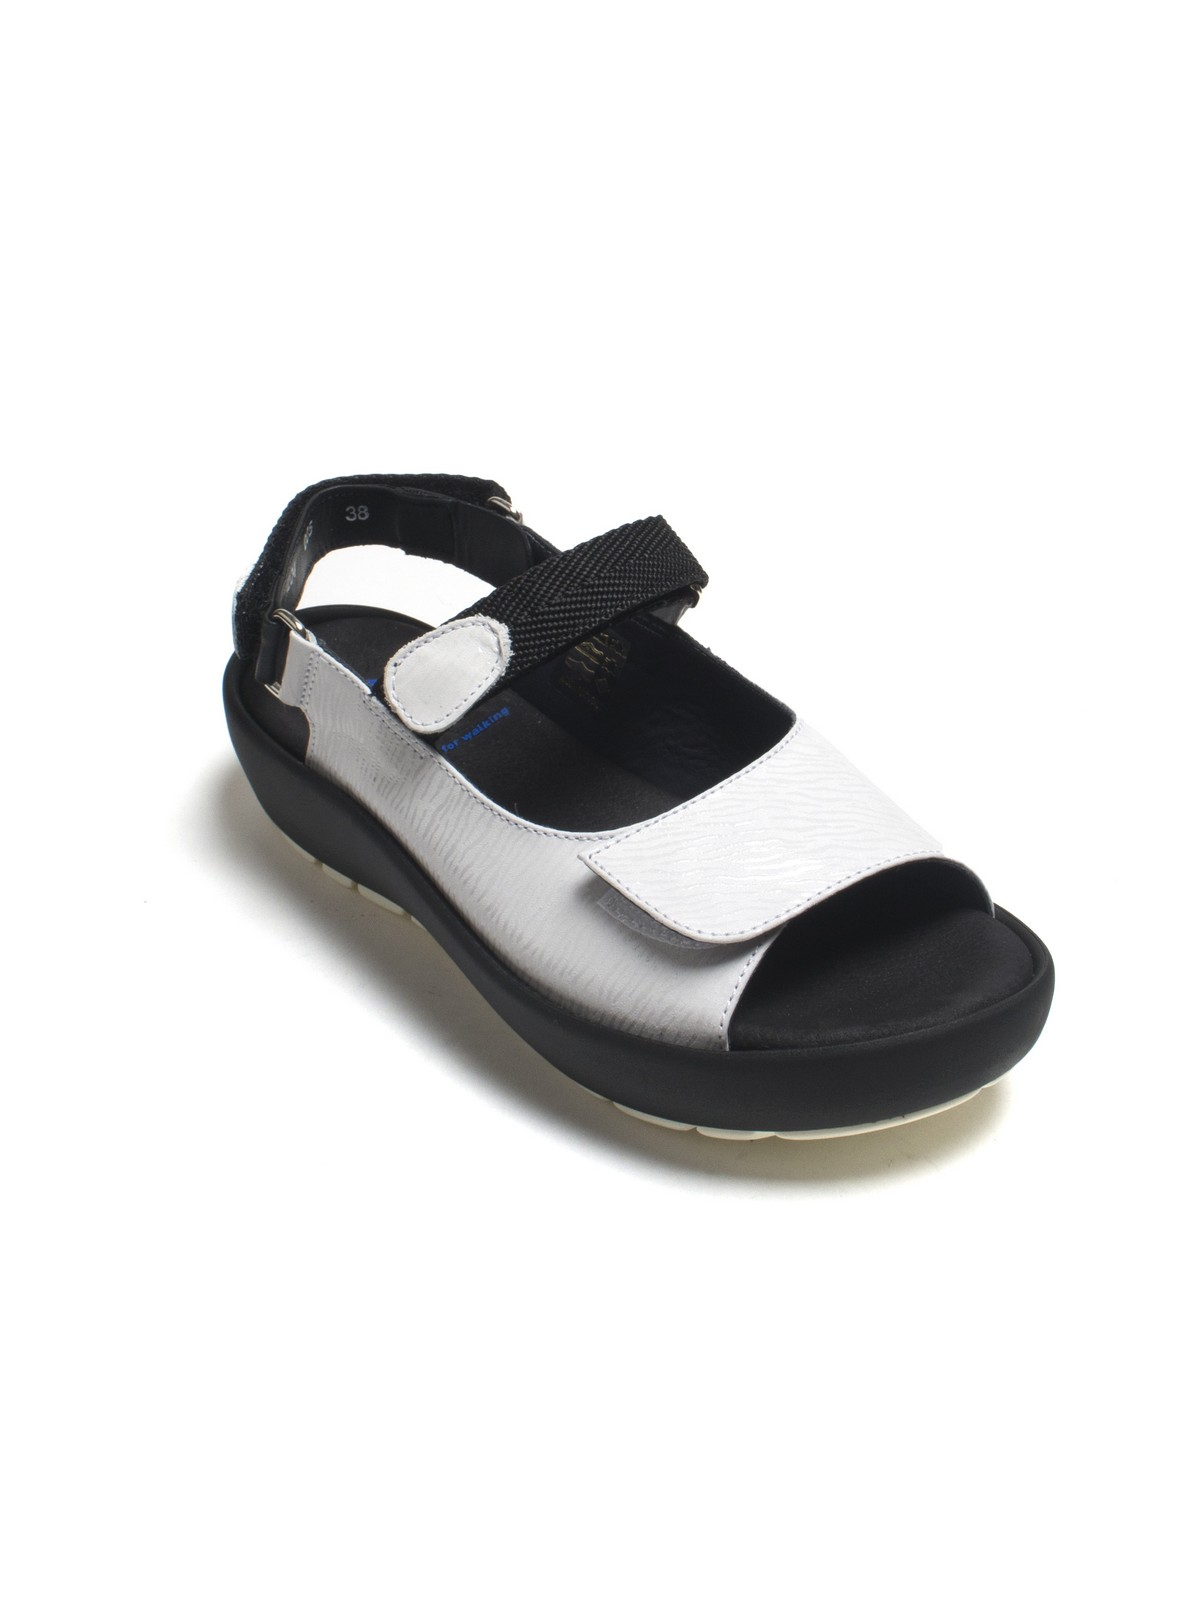 9a0bfde47d Jewel Canals Sandals White - Katie Kerr - Women s Clothing - UK